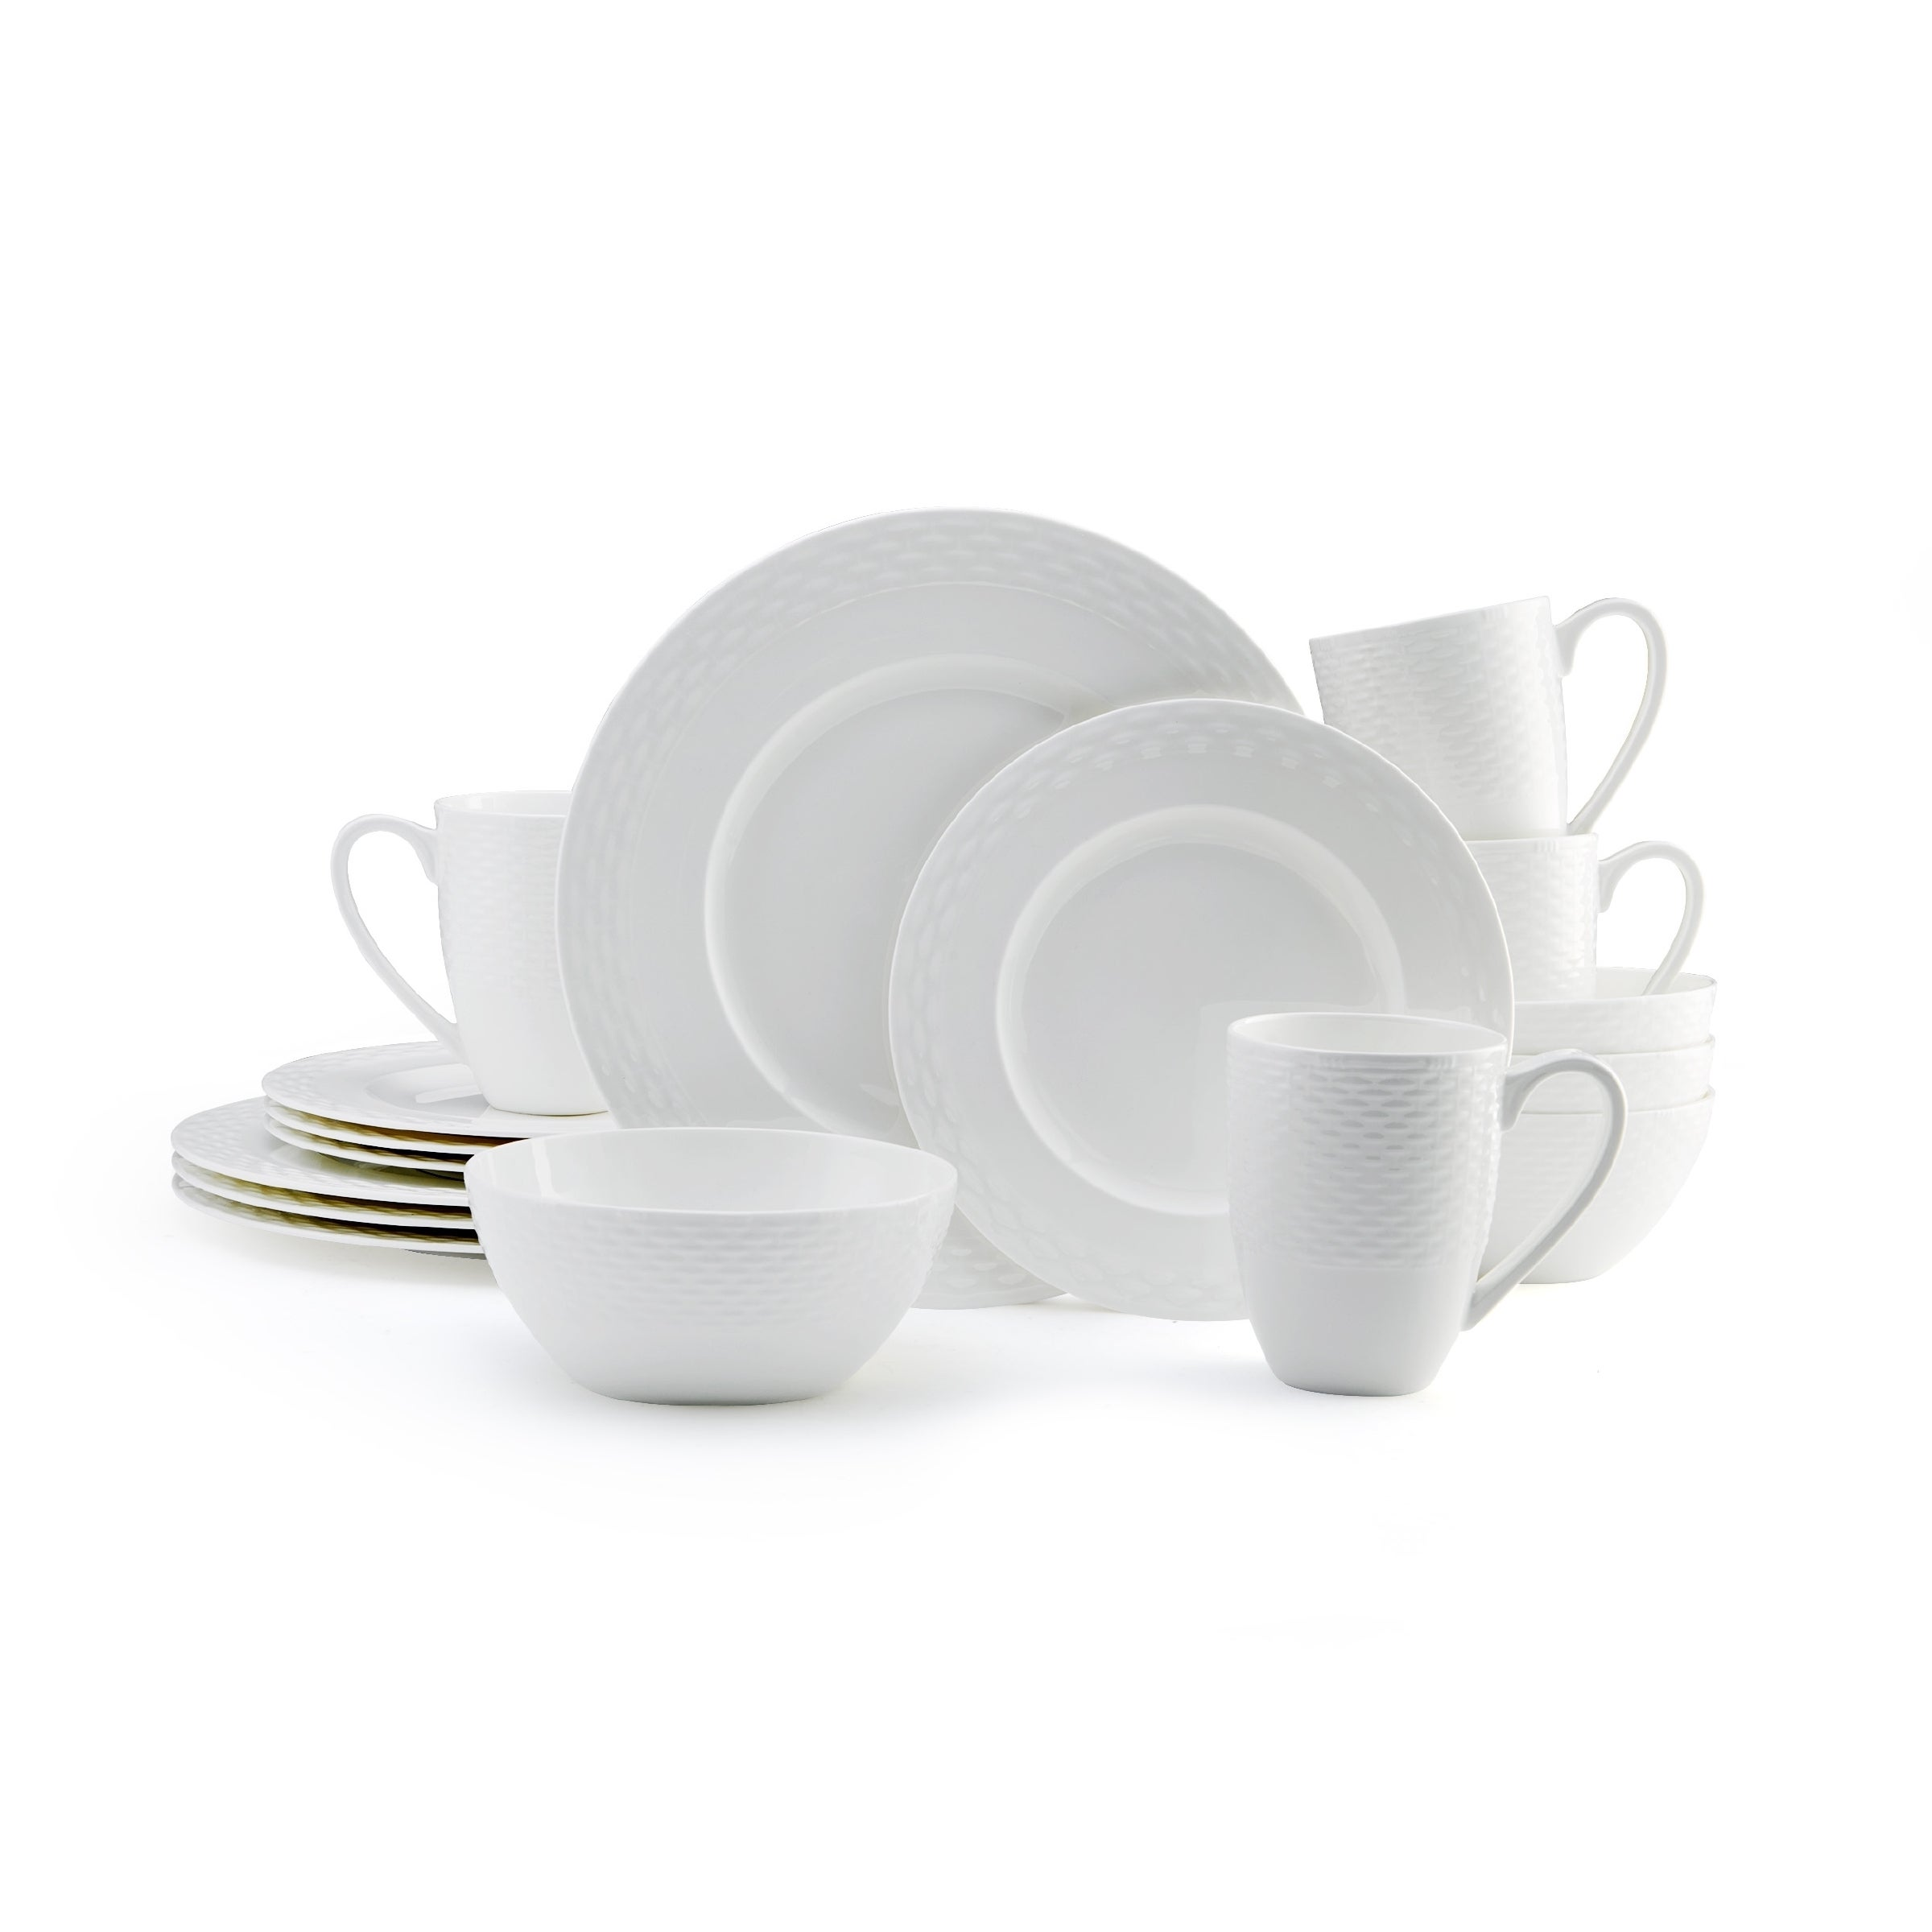 Mikasa Ortley 16-piece Dinnerware Set Bone China Round White - Free Shipping Today - Overstock - 17764833  sc 1 st  Overstock & Mikasa Ortley 16-piece Dinnerware Set Bone China Round White - Free ...